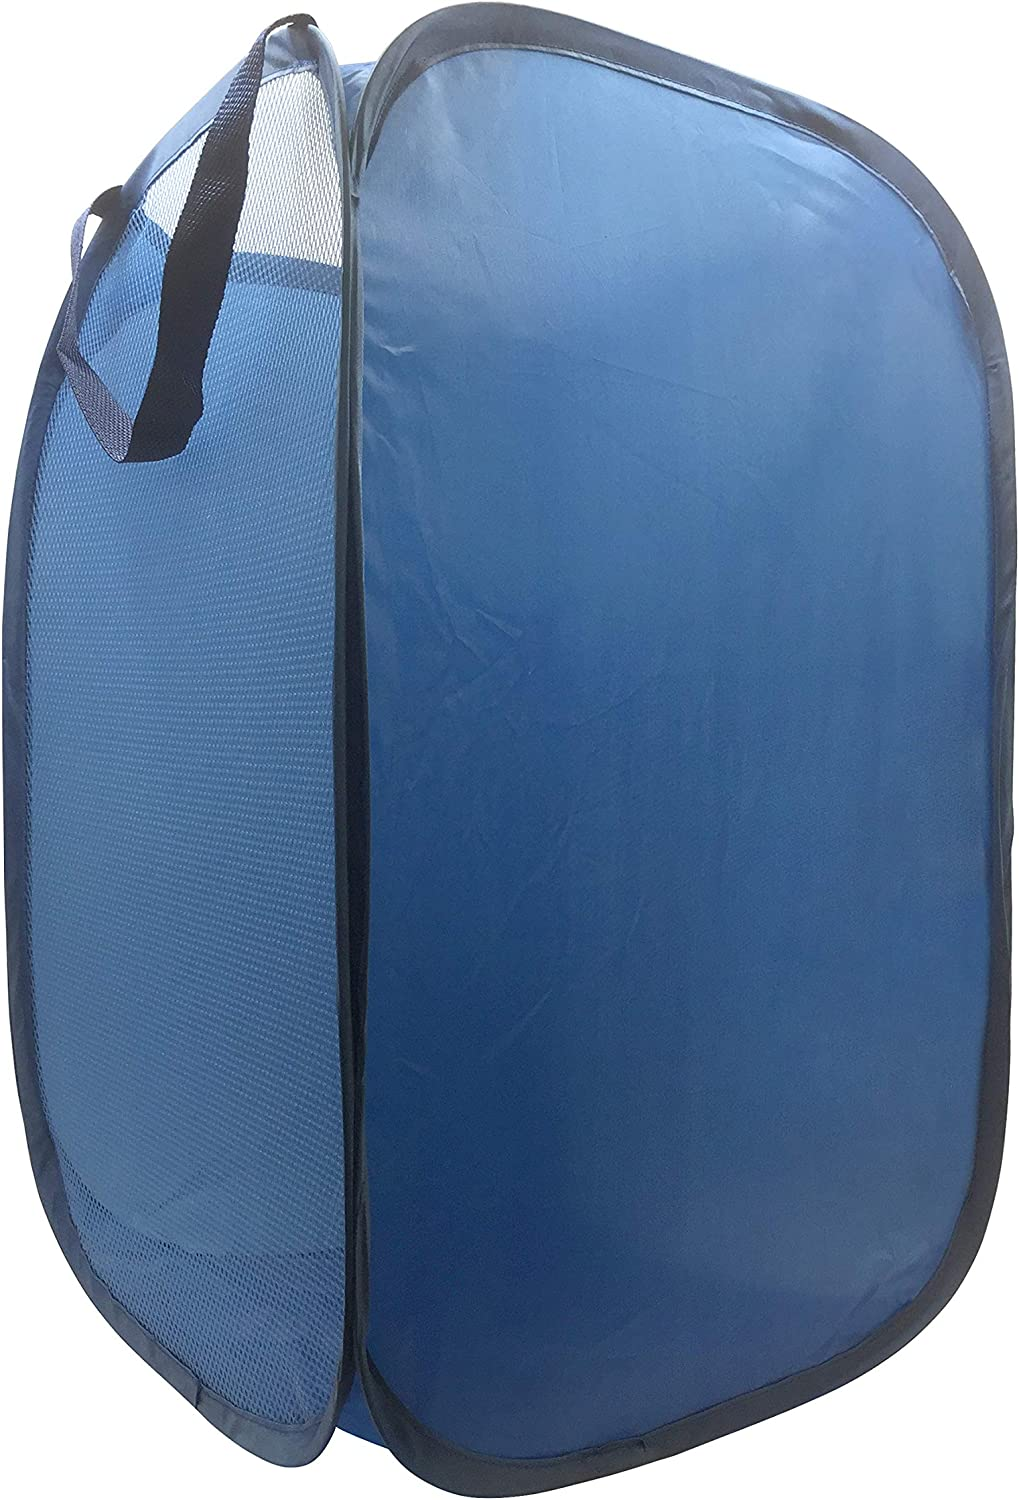 """Jay Franco Trend Collector Blue Pop Up Hamper - Mesh Laundry Basket/Bag with Durable Handles, 22"""" x 14"""""""